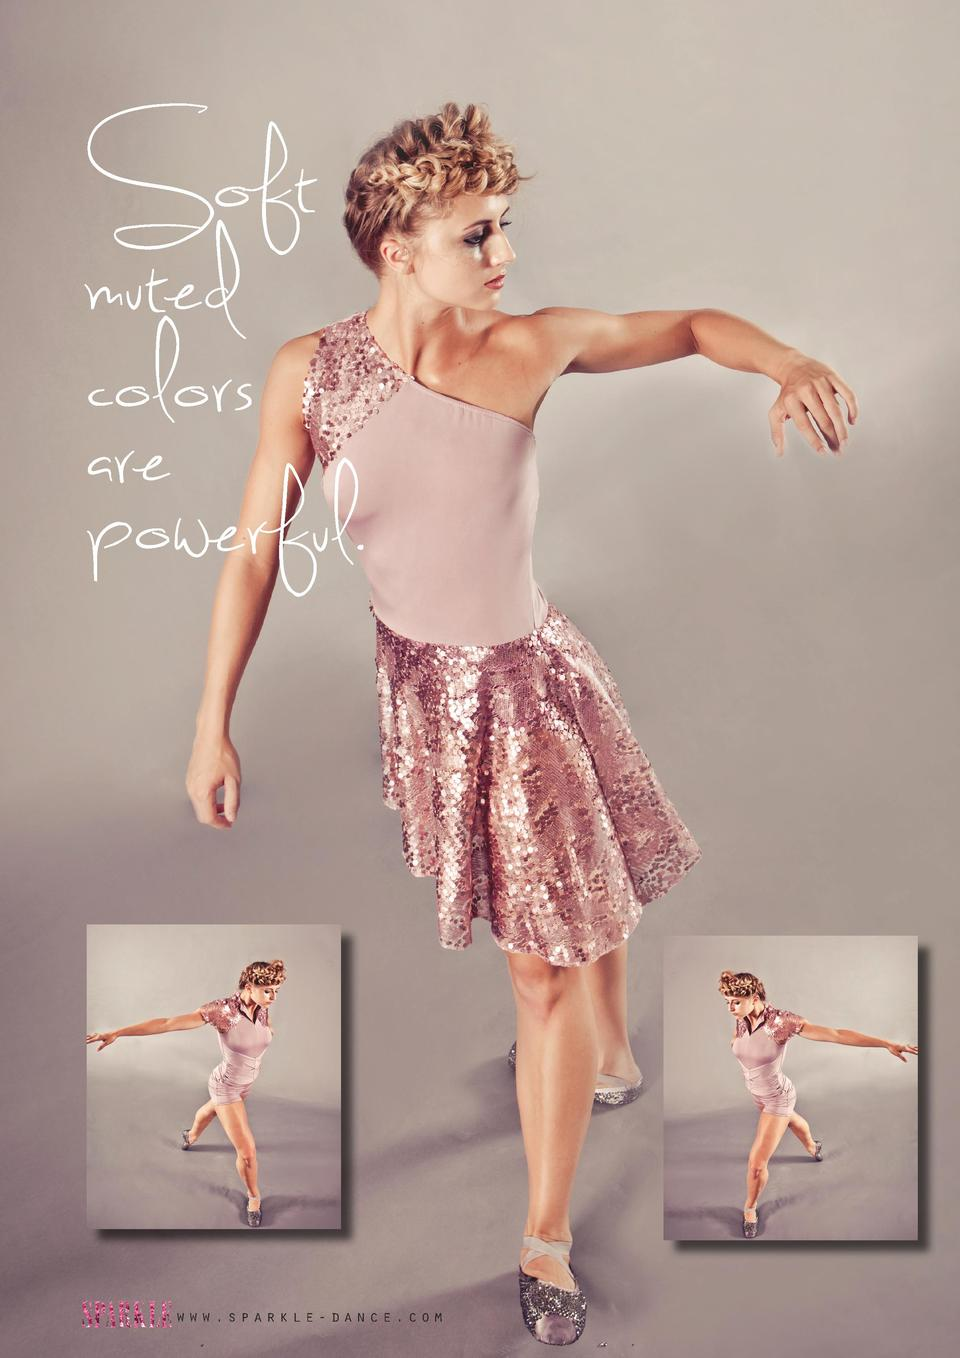 Soft muted colors are powerful.  www.sparkle-dance.com